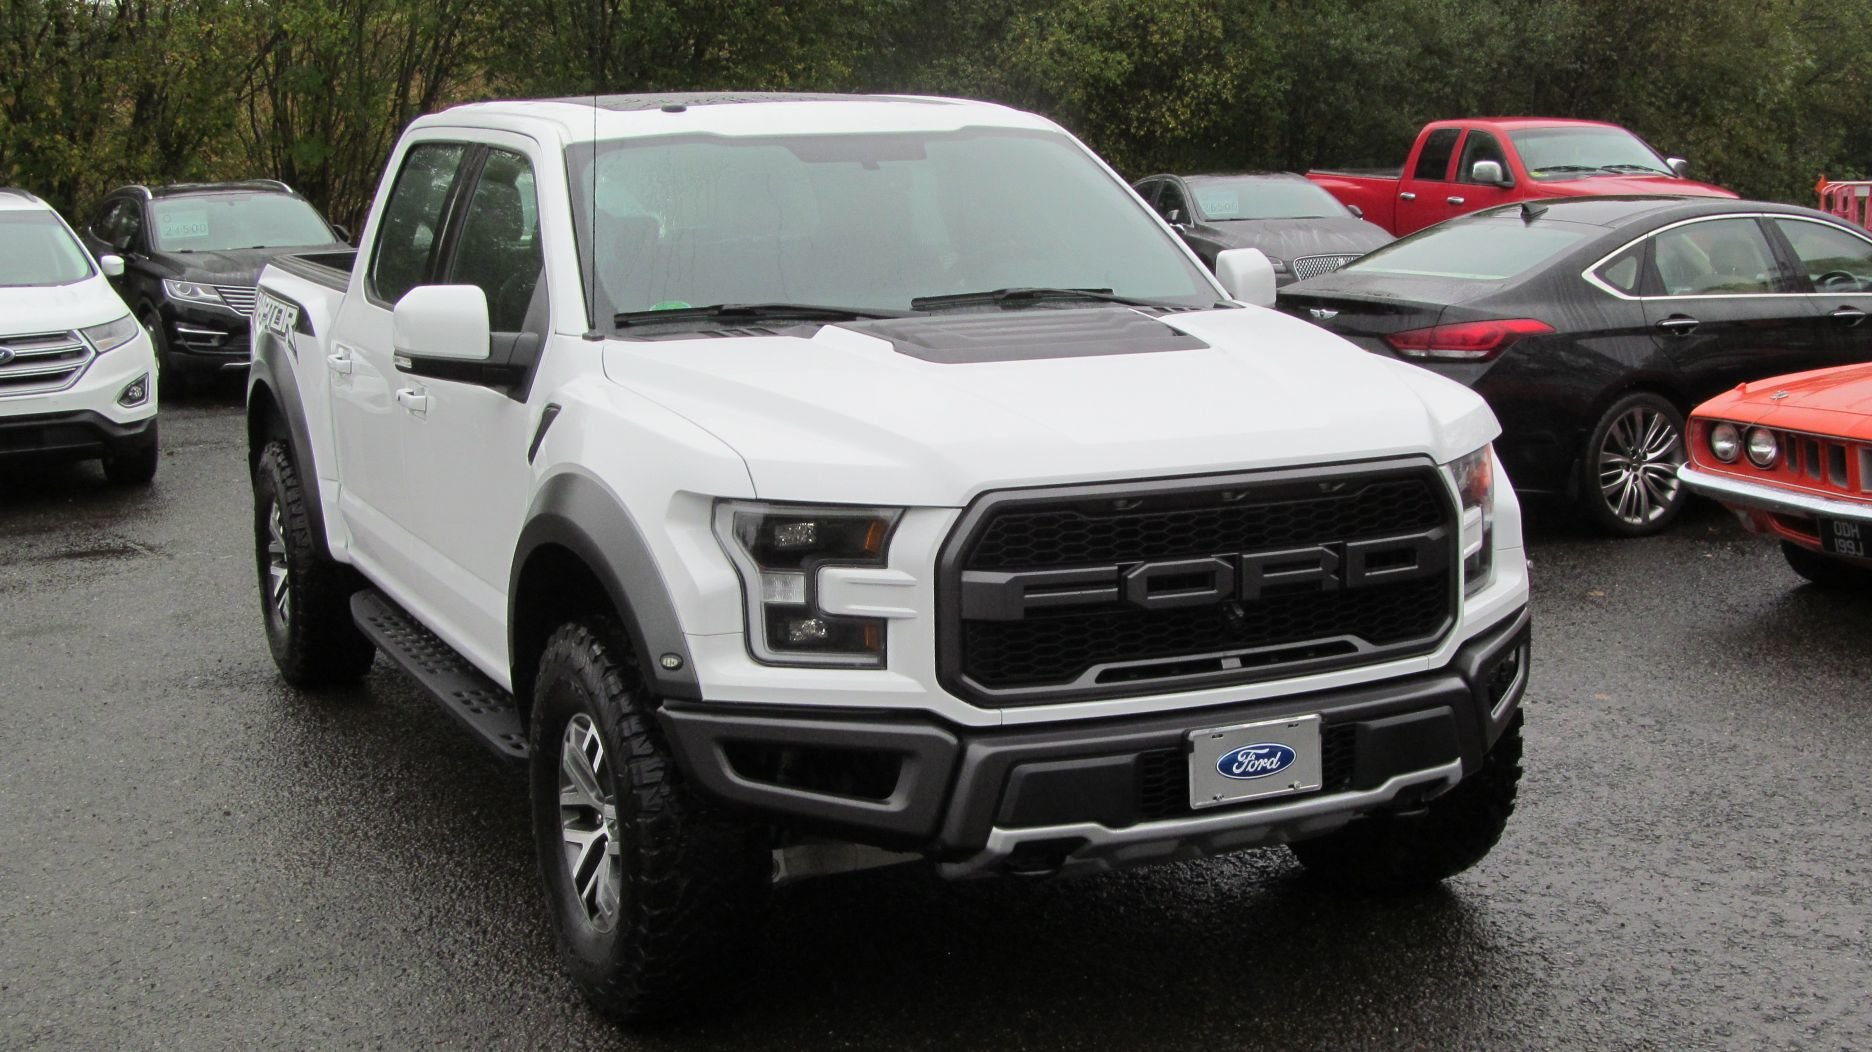 2018 Ford F150 RAPTOR SUPERCREW 4X4  SOLD (picture 1 of 5)